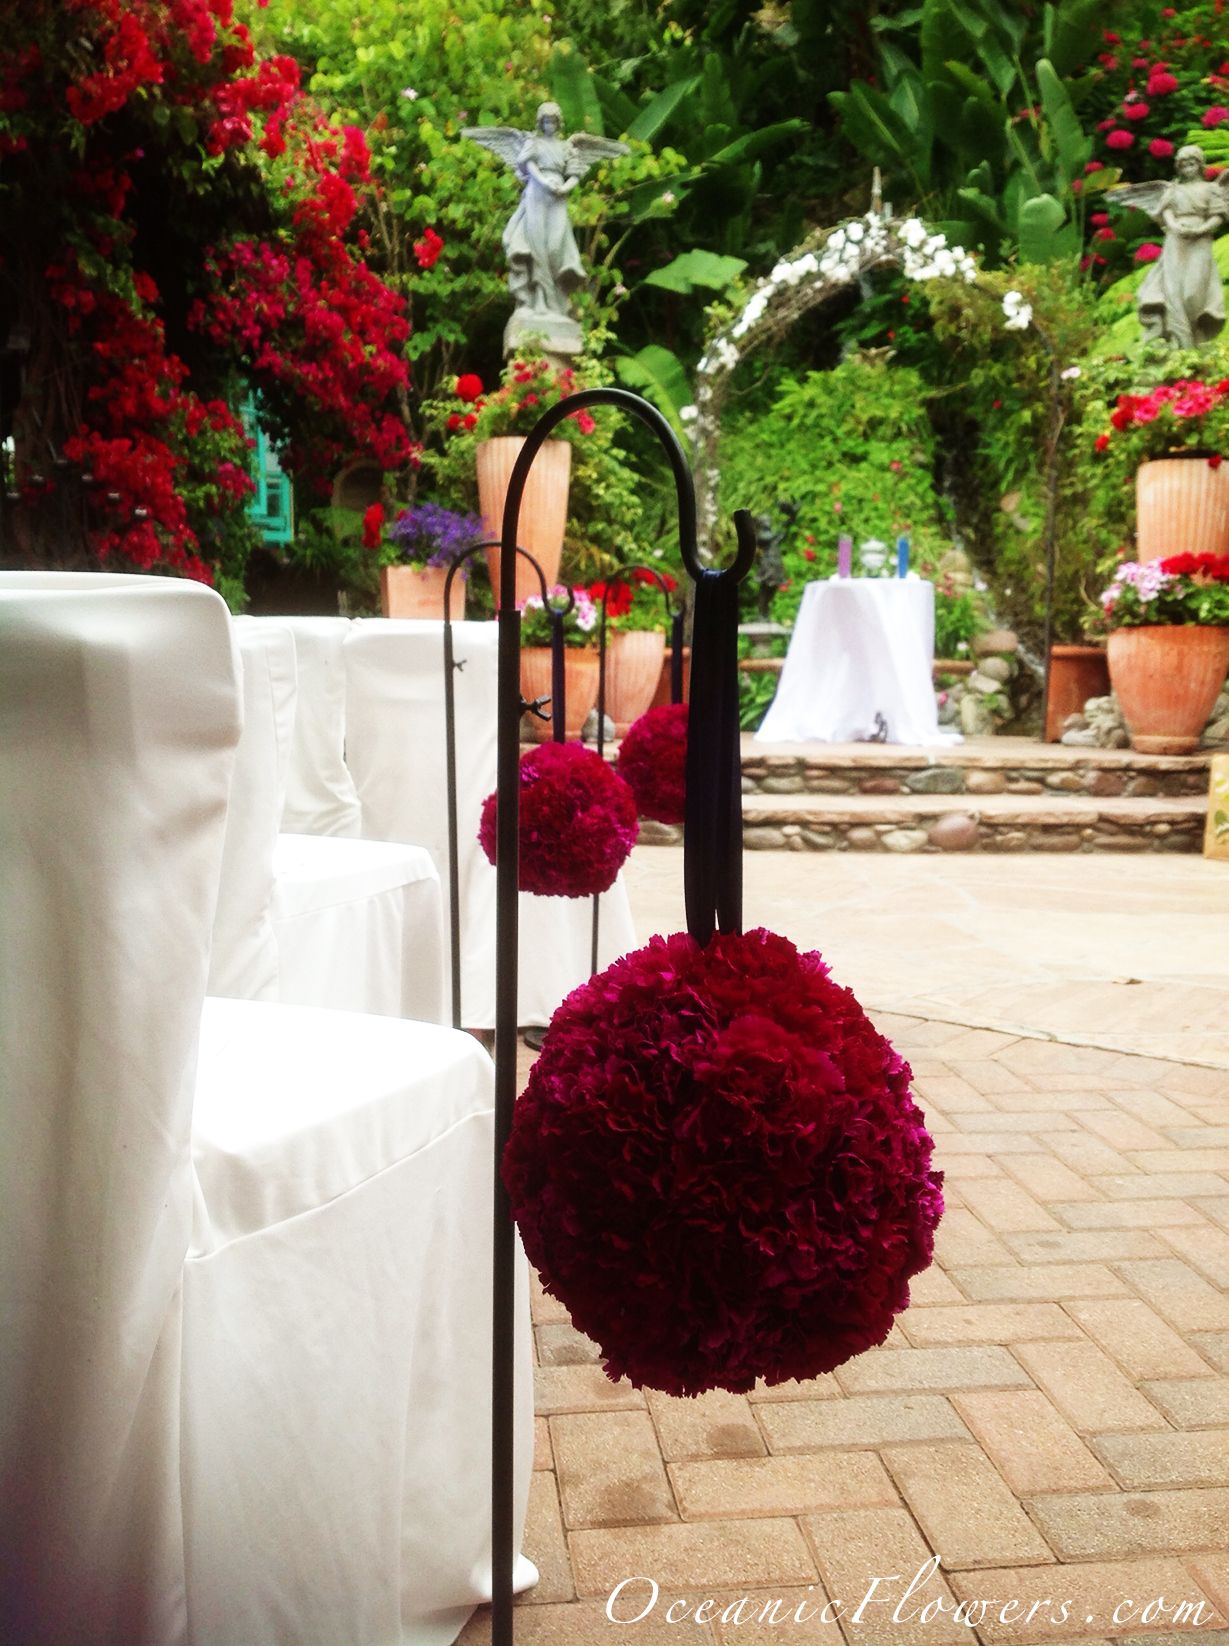 Wedding decorations red  Red Pomanders for the Ceremony Aisle Decoration  Diseño floral